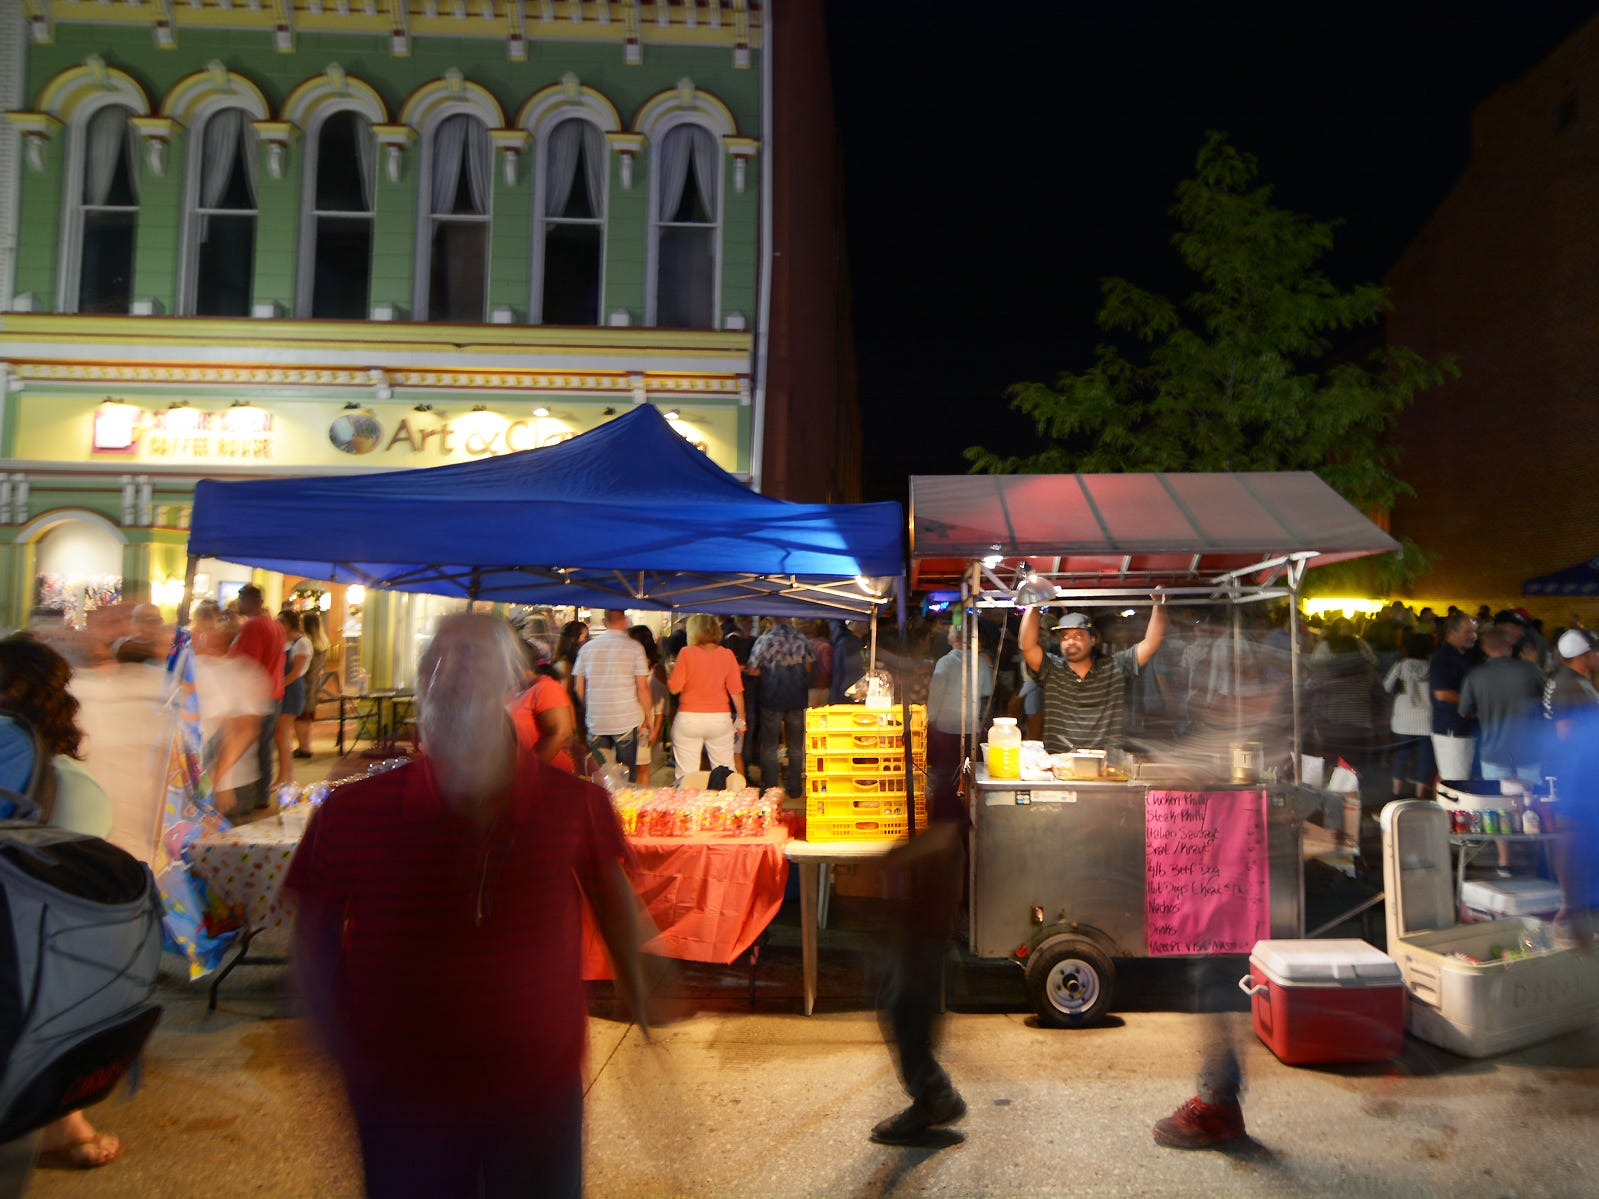 Darrel DeBerry of D's Dogs food cart waits to sell the next order of food Friday evening, July 21, 2018, during the Lancaster Festival ArtWalk in Lancaster.